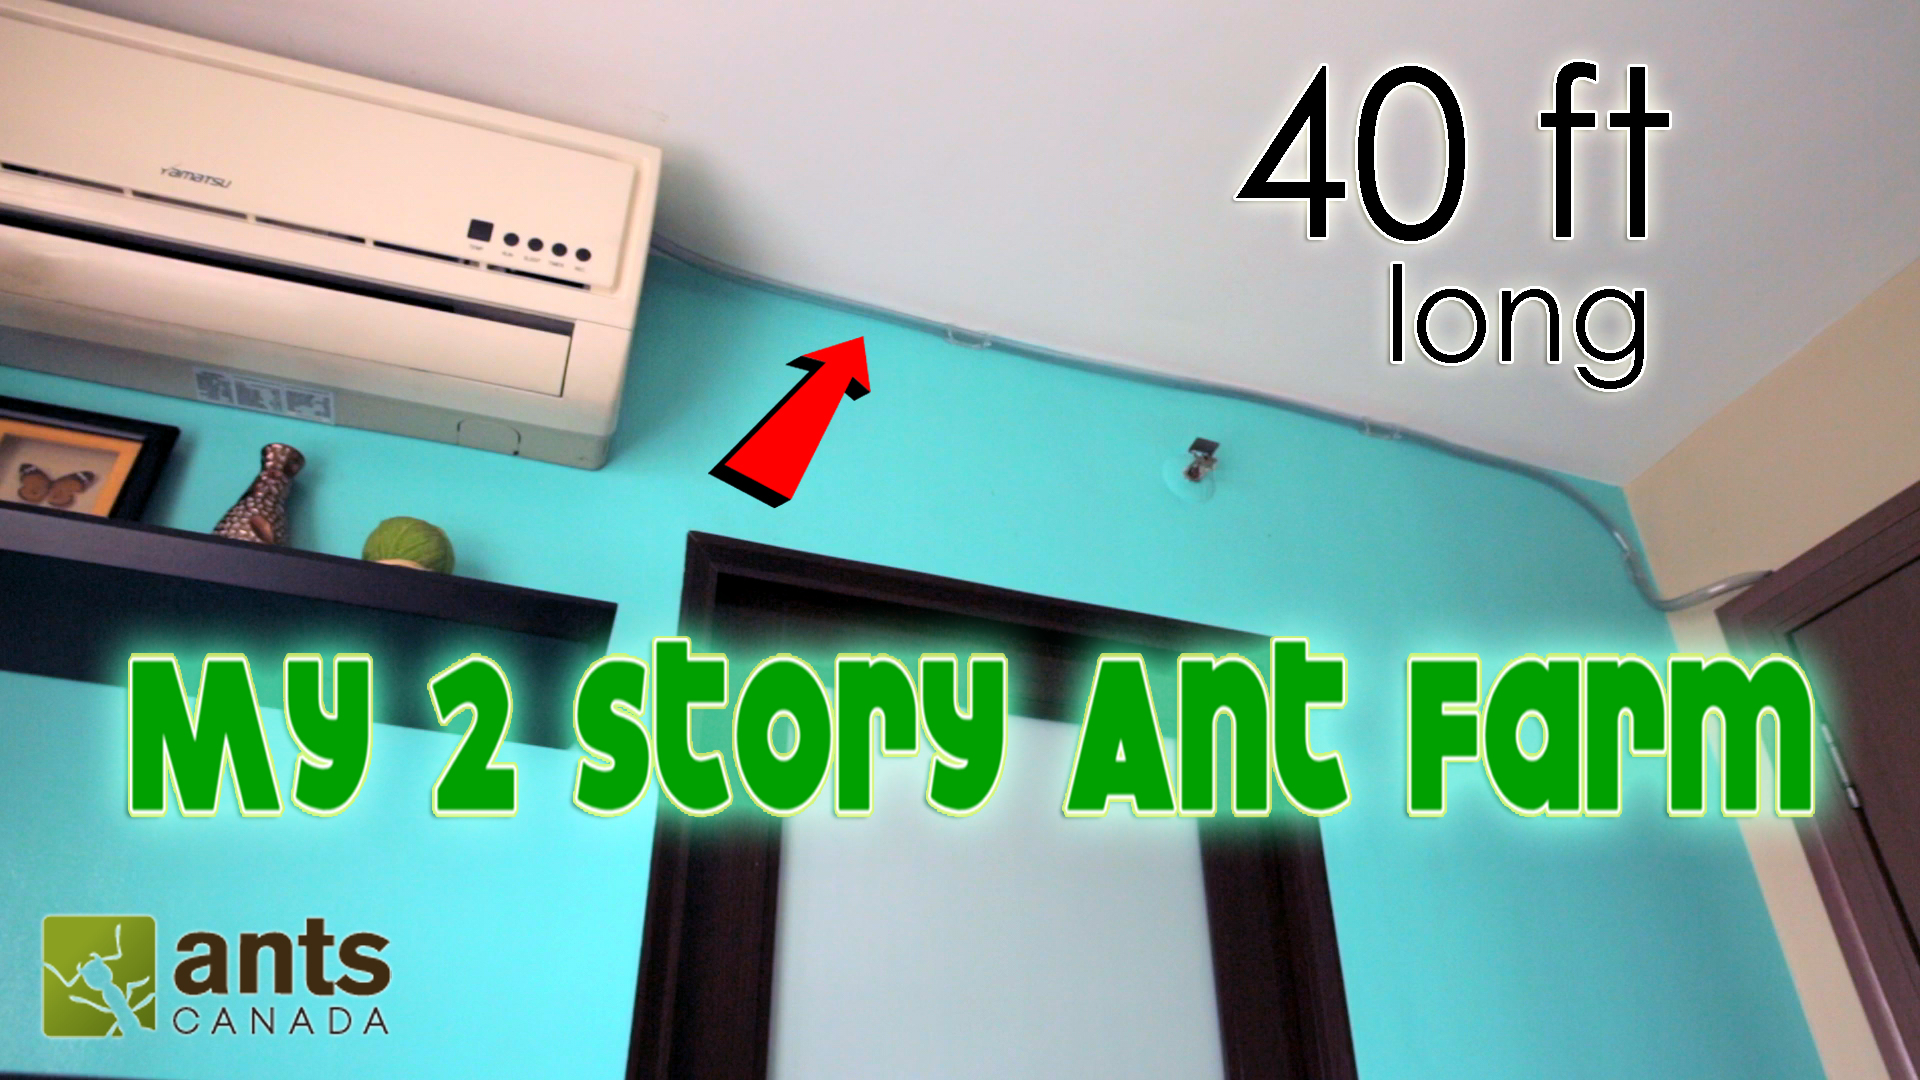 NEW VIDEO: I Made a 2-Story Ant Farm